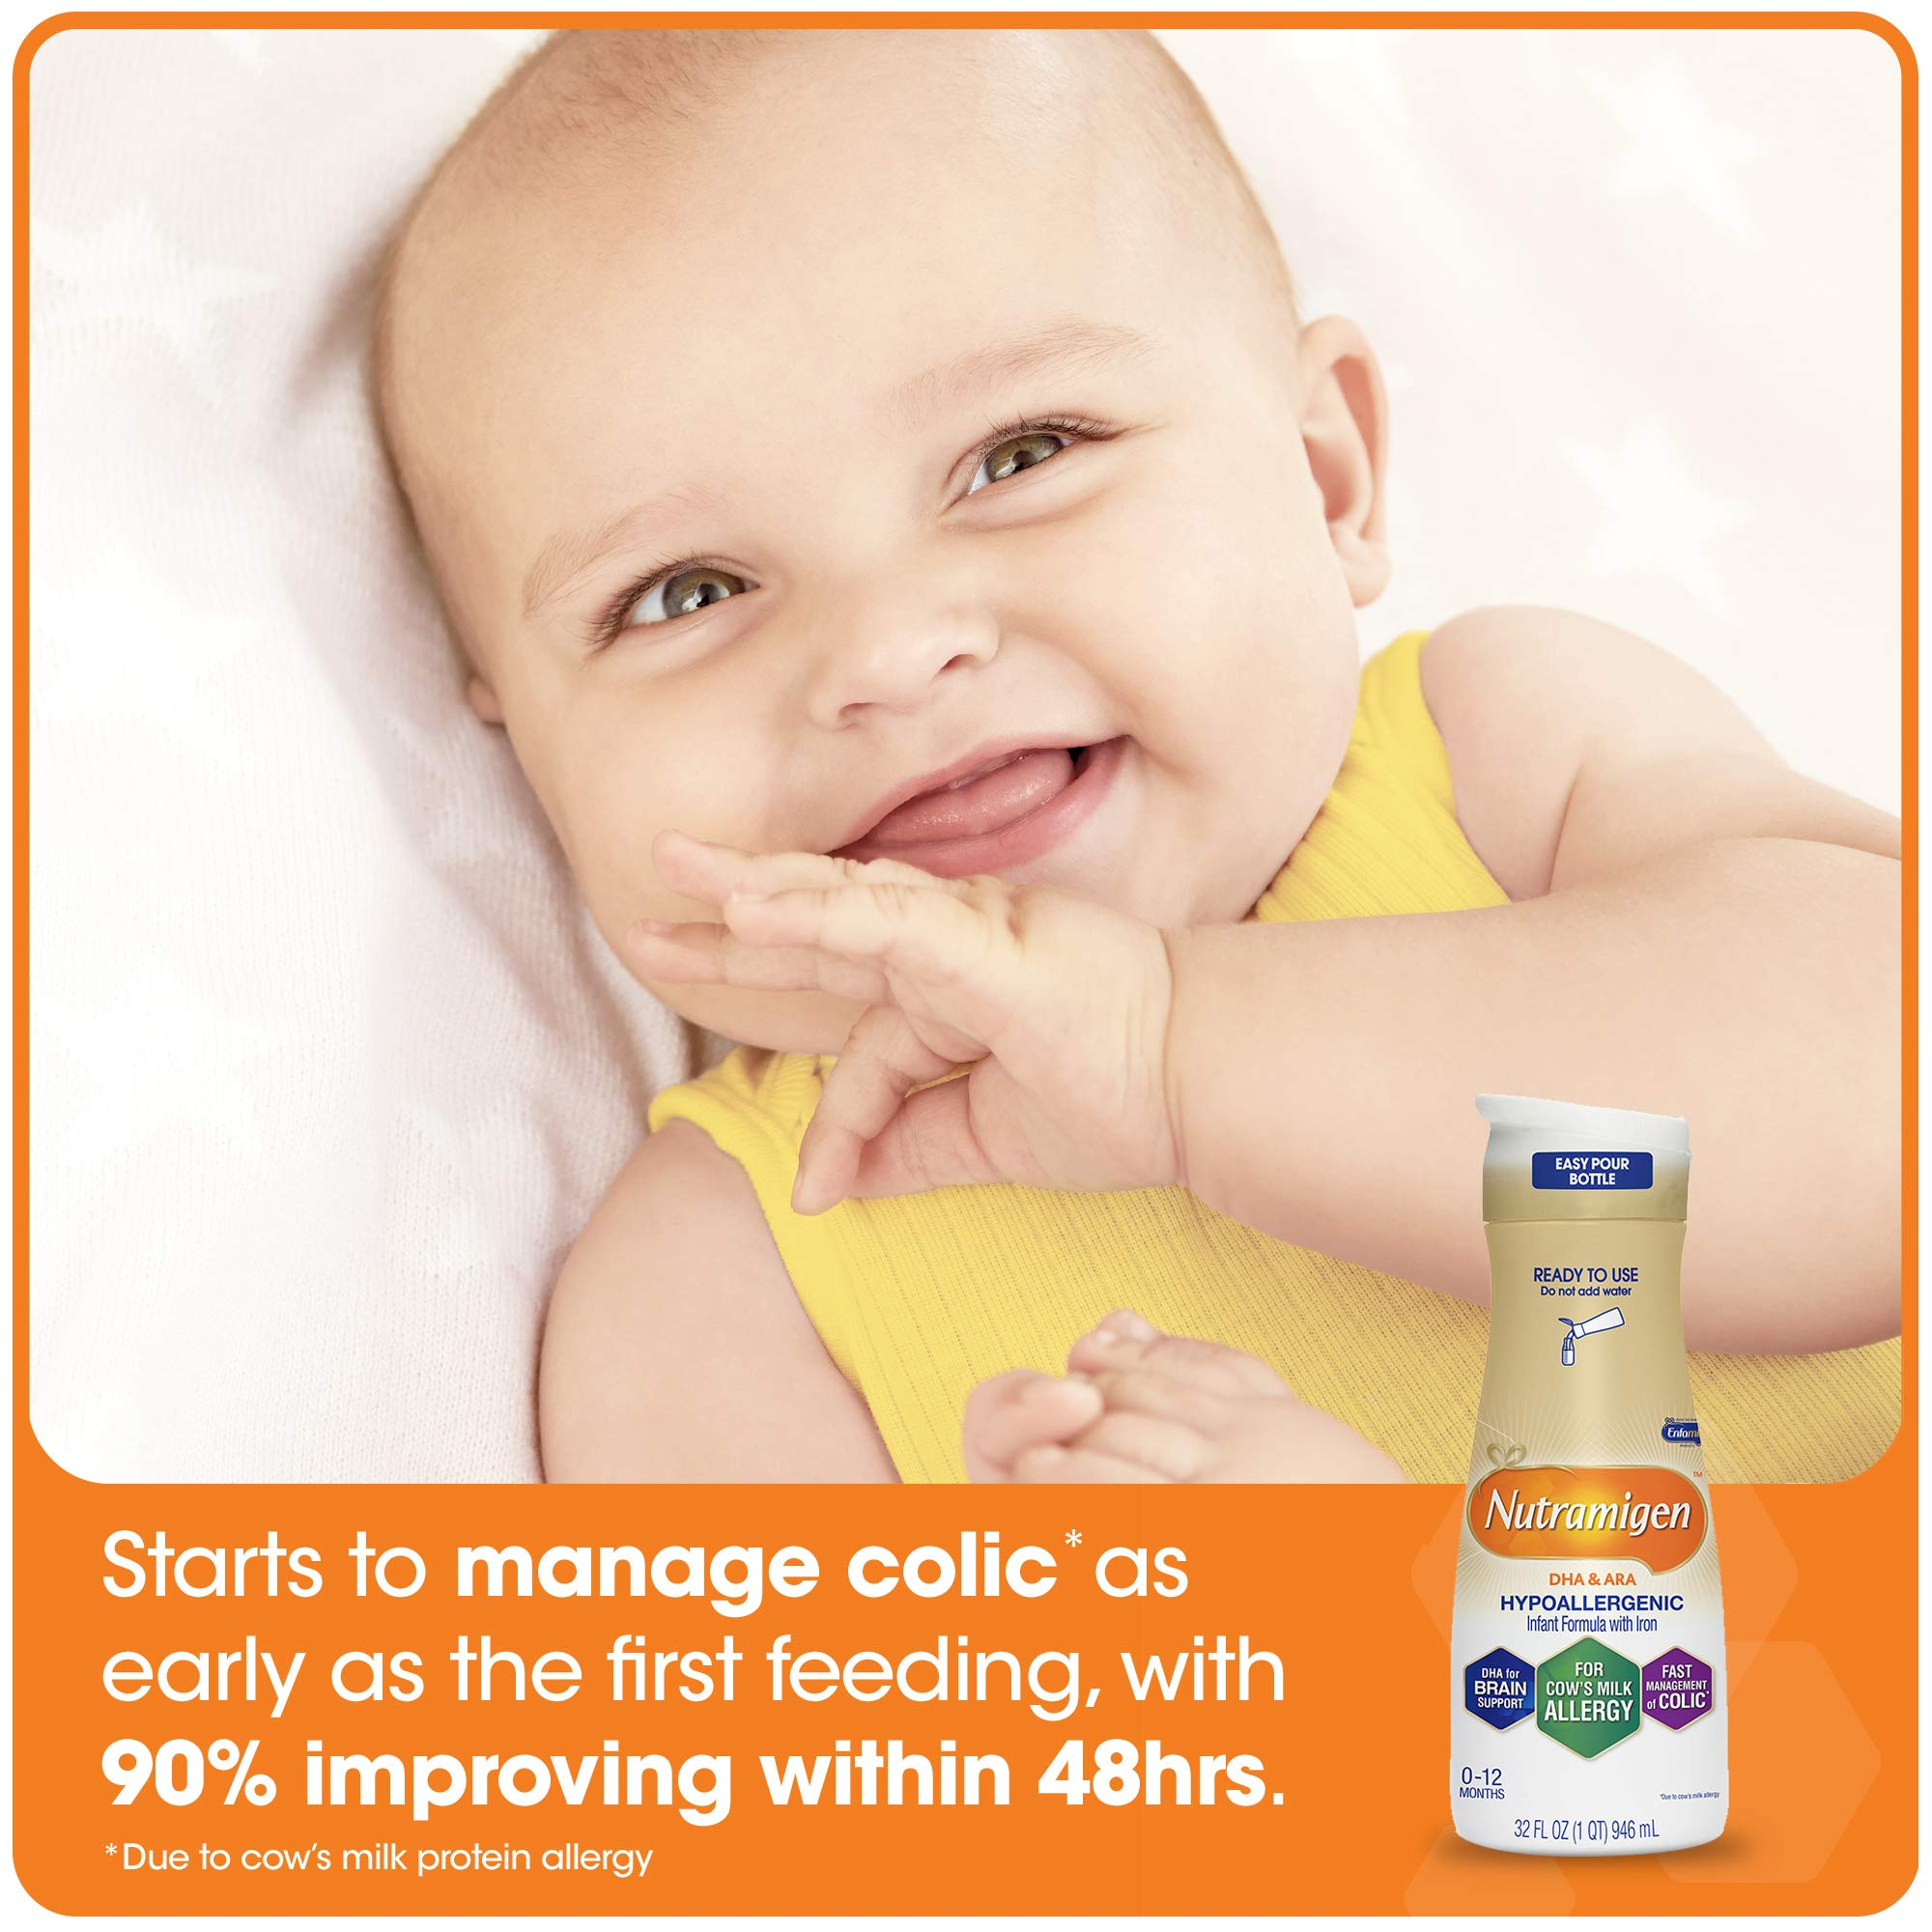 Enfamil Nutramigen Infant Formula - Hypoallergenic & Lactose-Free for Fast Colic Management - Ready to Use Liquid, 32 fl oz (6 count) by Enfamil (Image #5)